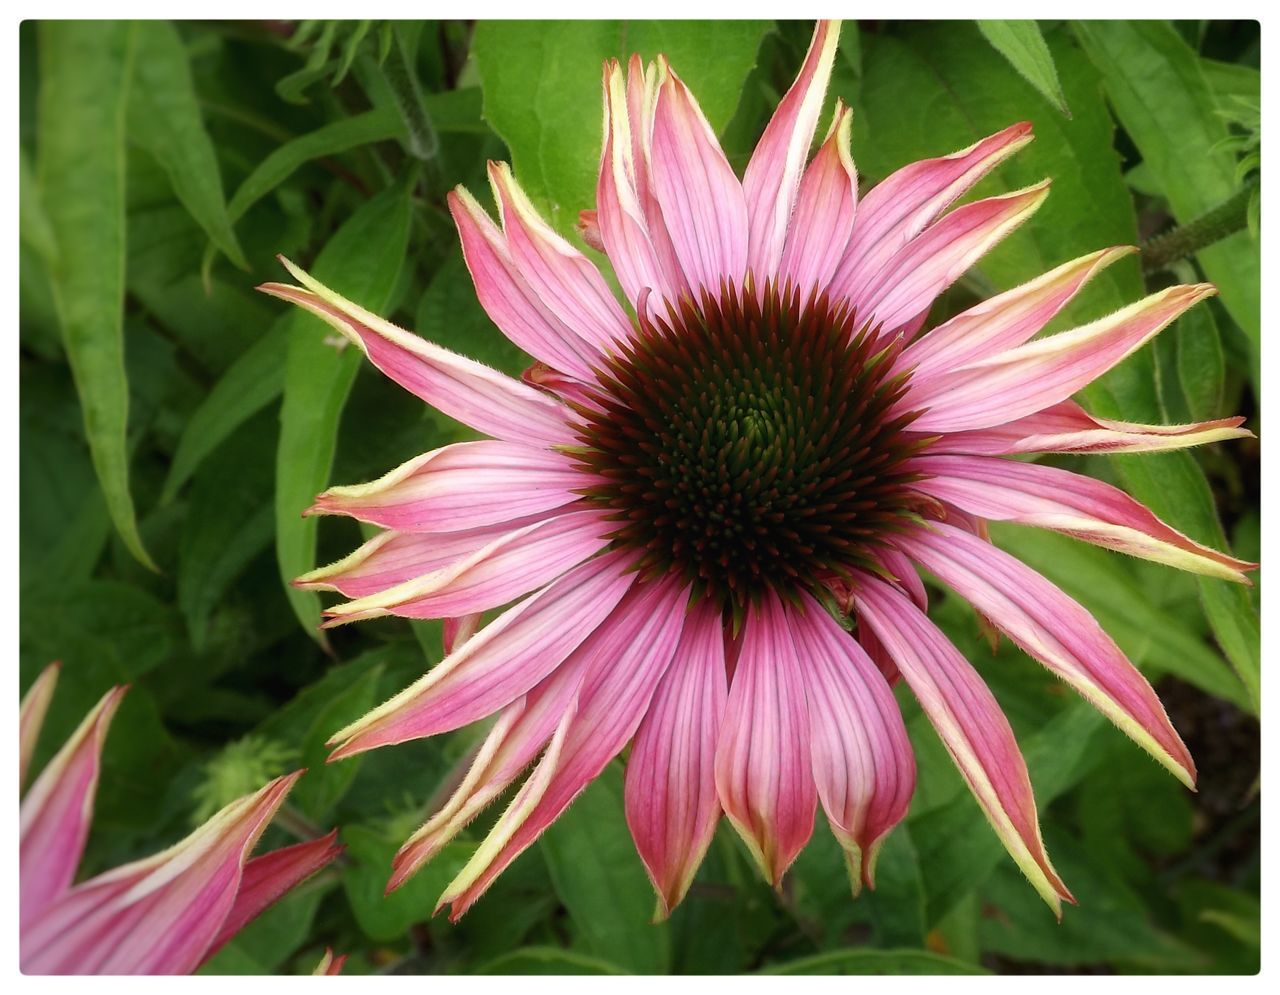 flower, growth, fragility, petal, freshness, nature, plant, flower head, beauty in nature, blooming, outdoors, no people, day, close-up, eastern purple coneflower